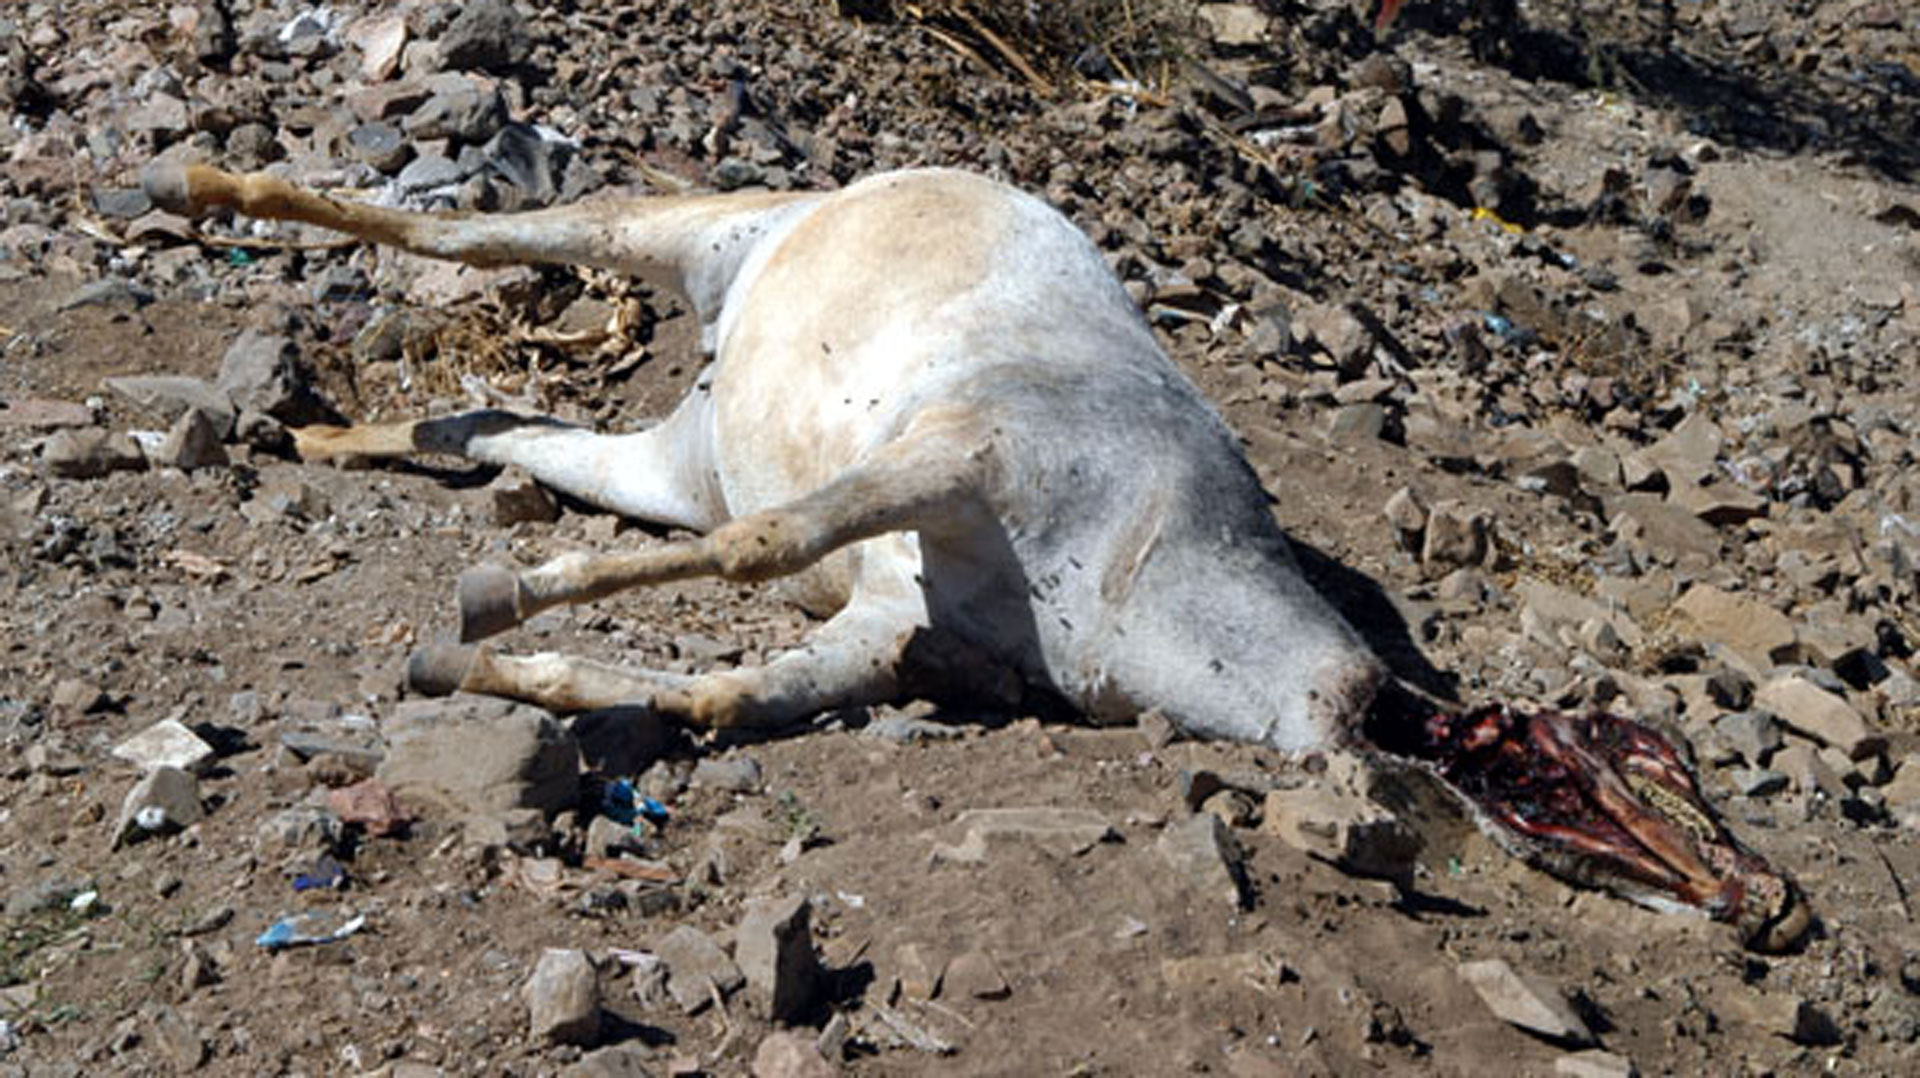 Dead donkey on the roadside of the desert road from Cairo to Alexandria.